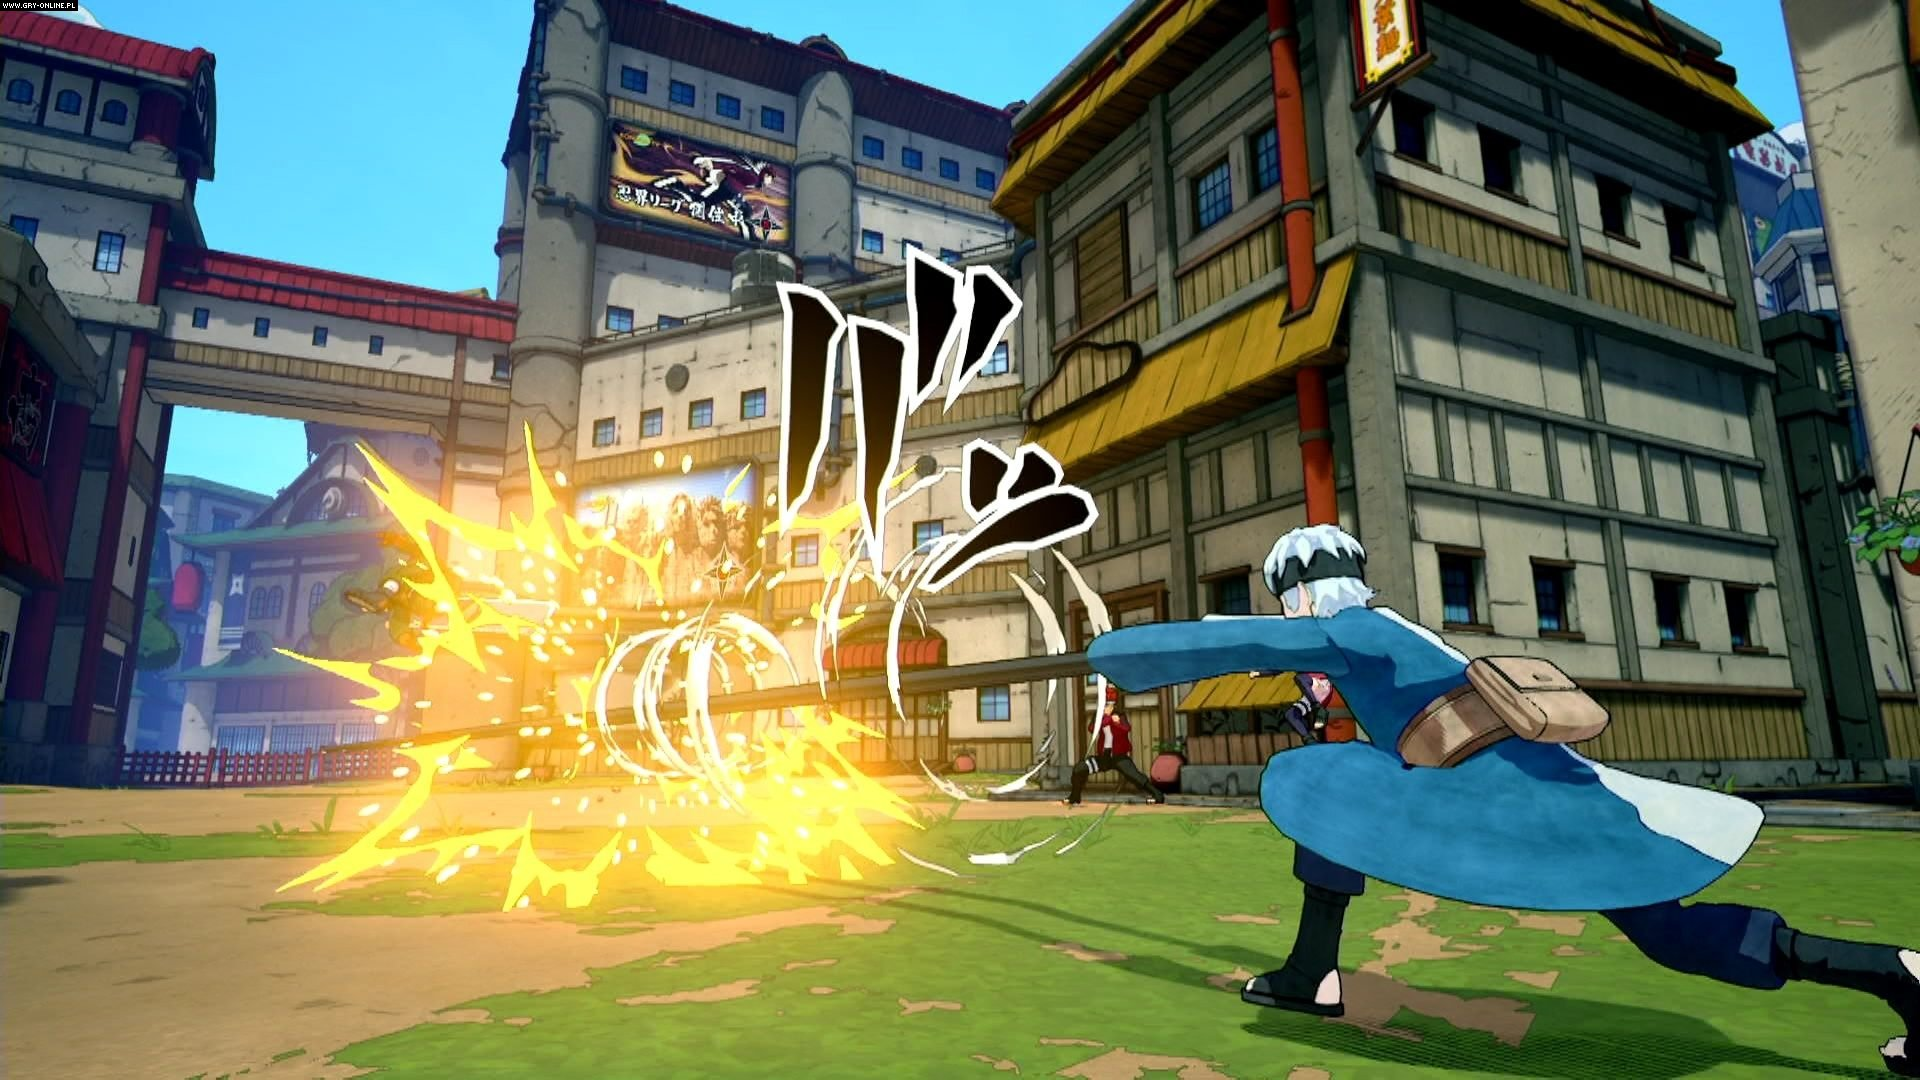 Naruto to Boruto: Shinobi Striker PC, PS4, XONE Games Image 32/66, Soleil, Bandai Namco Entertainment